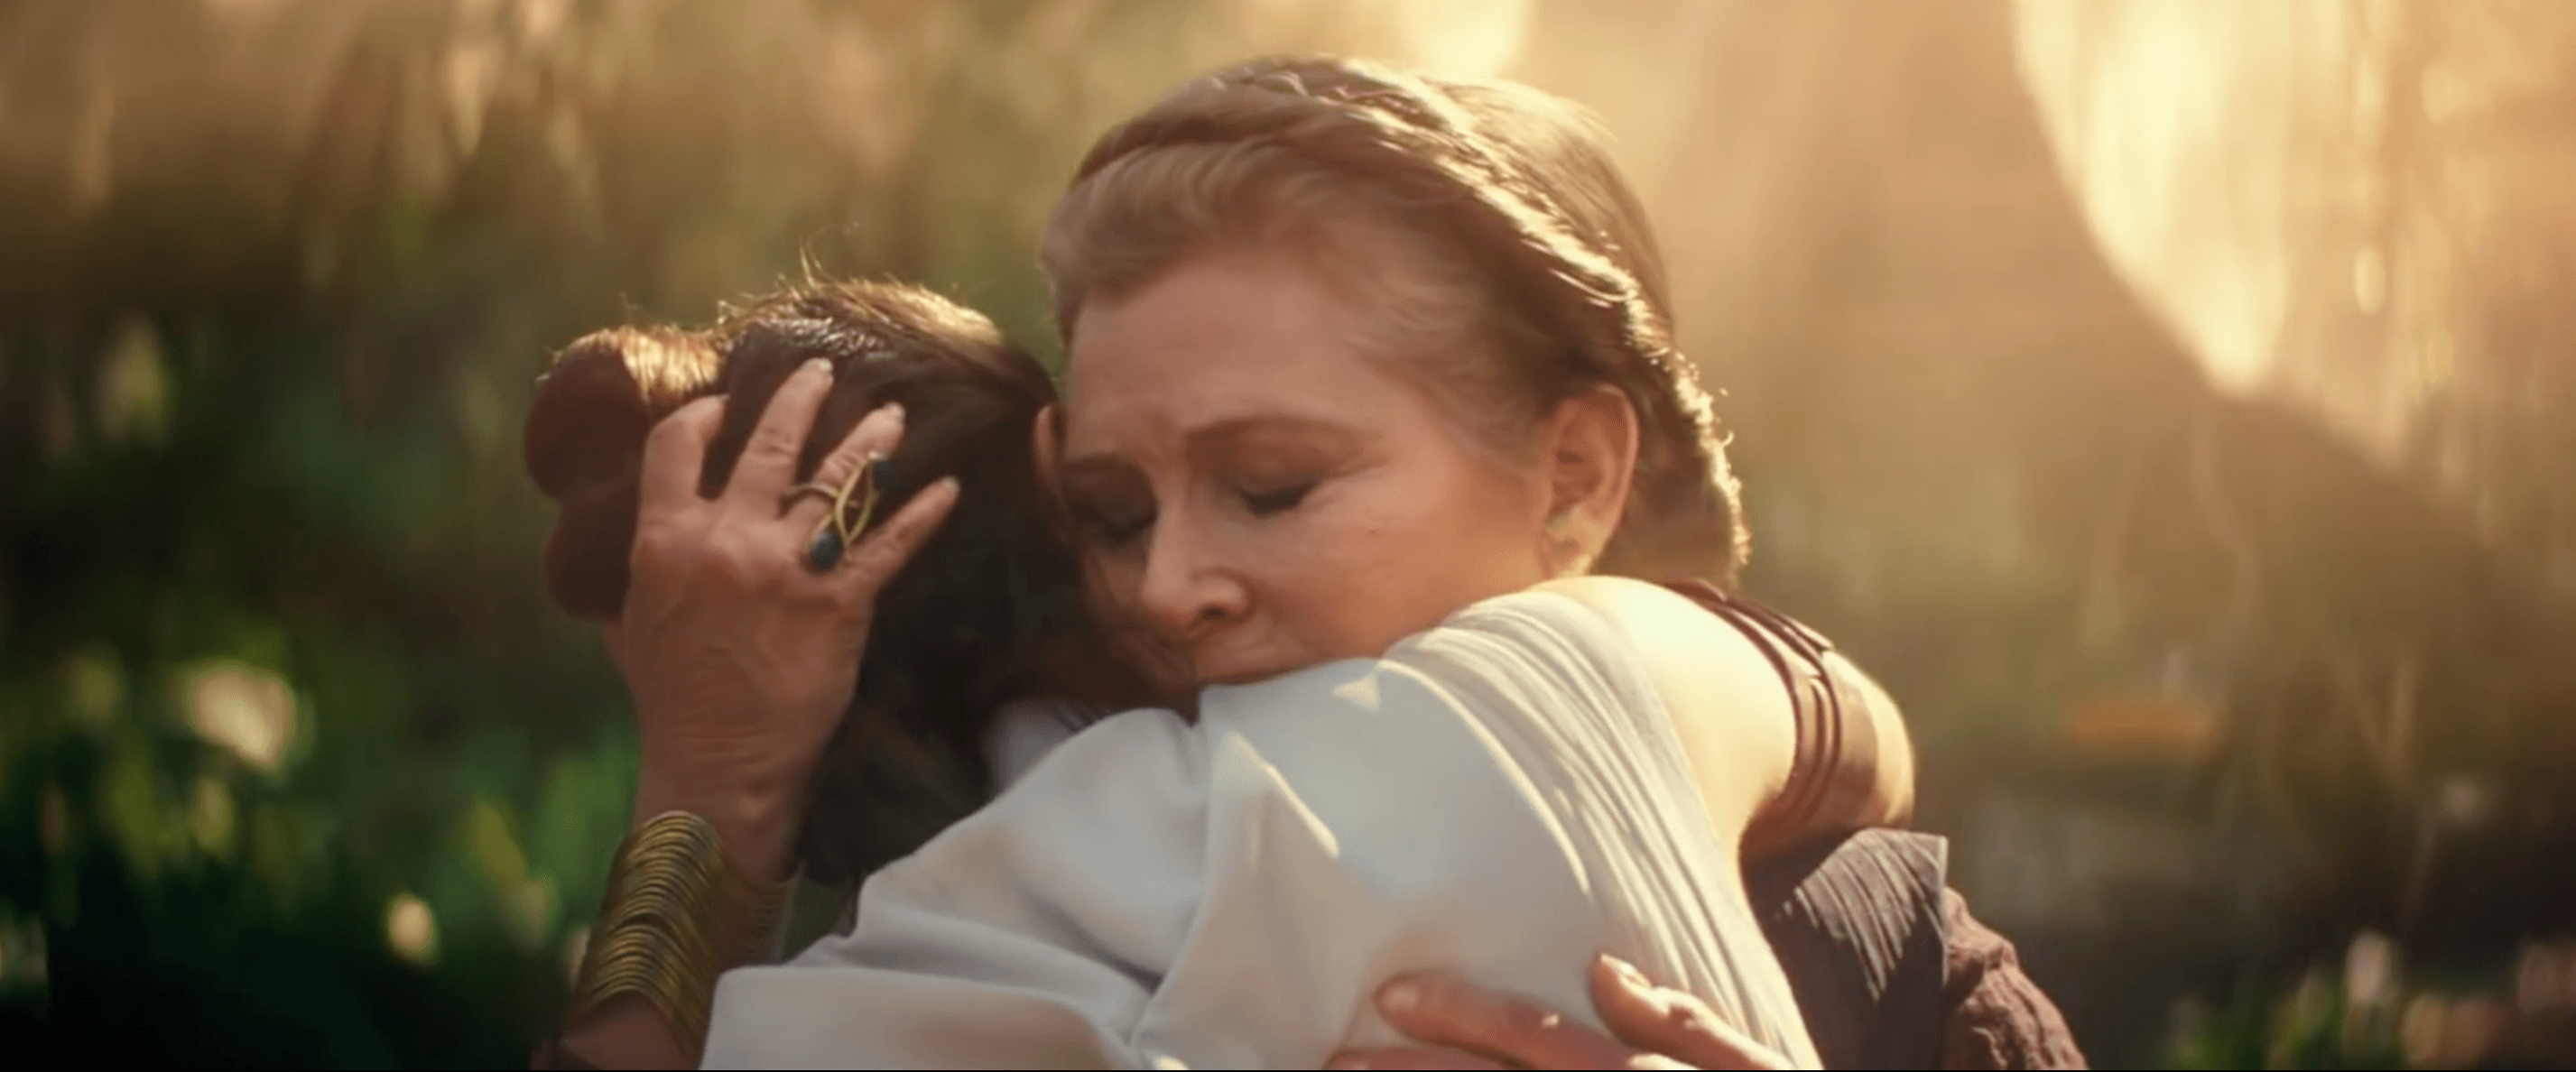 La secuela Star Wars: The Rise of Skywalker lanza emocionante tráiler final